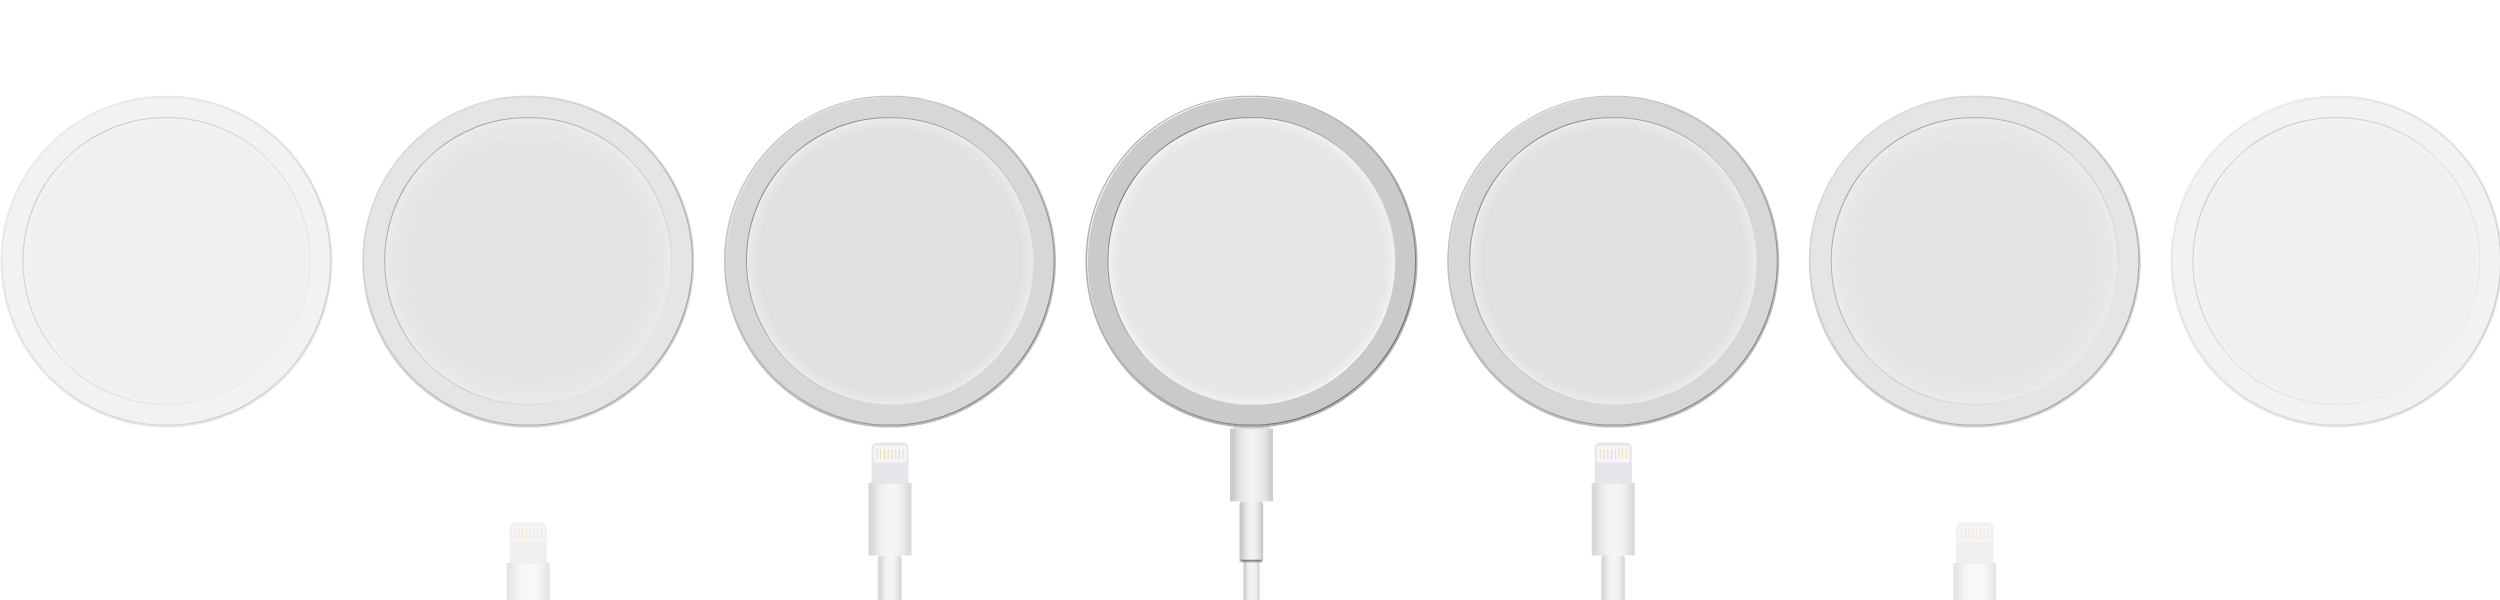 MagSafe Chargers.